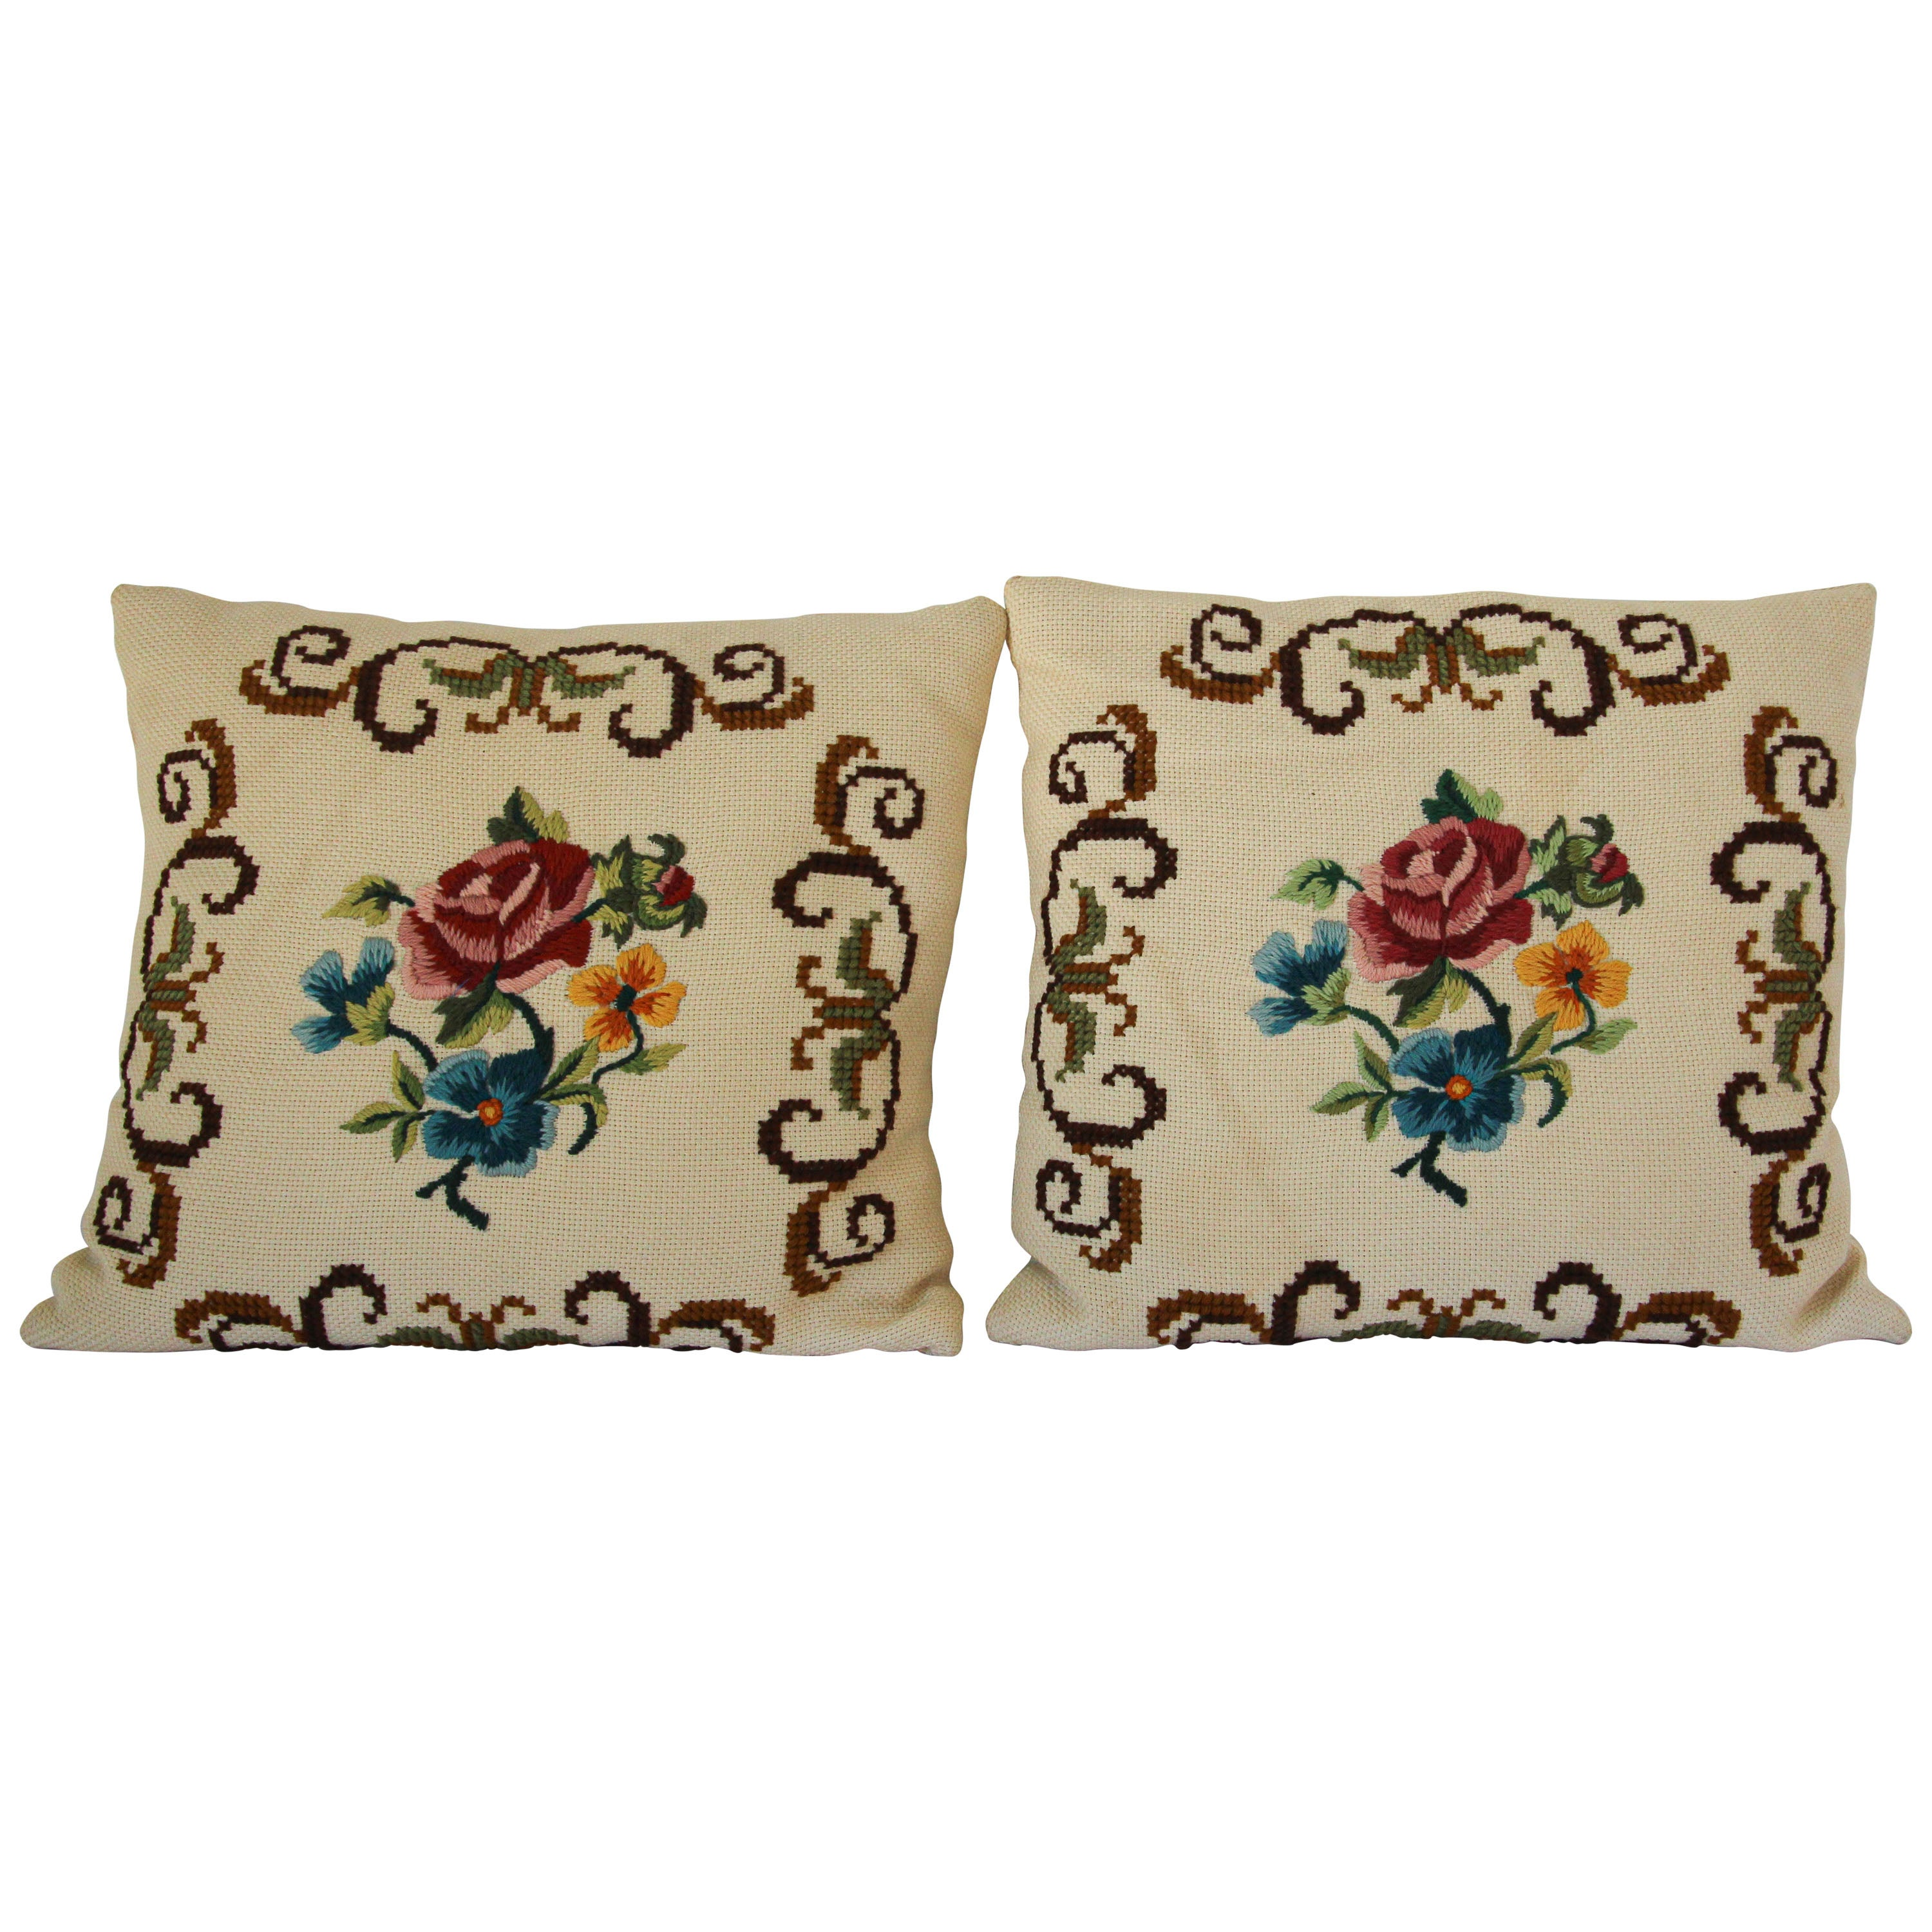 French Provincial Handmade Needlepoint Pillows